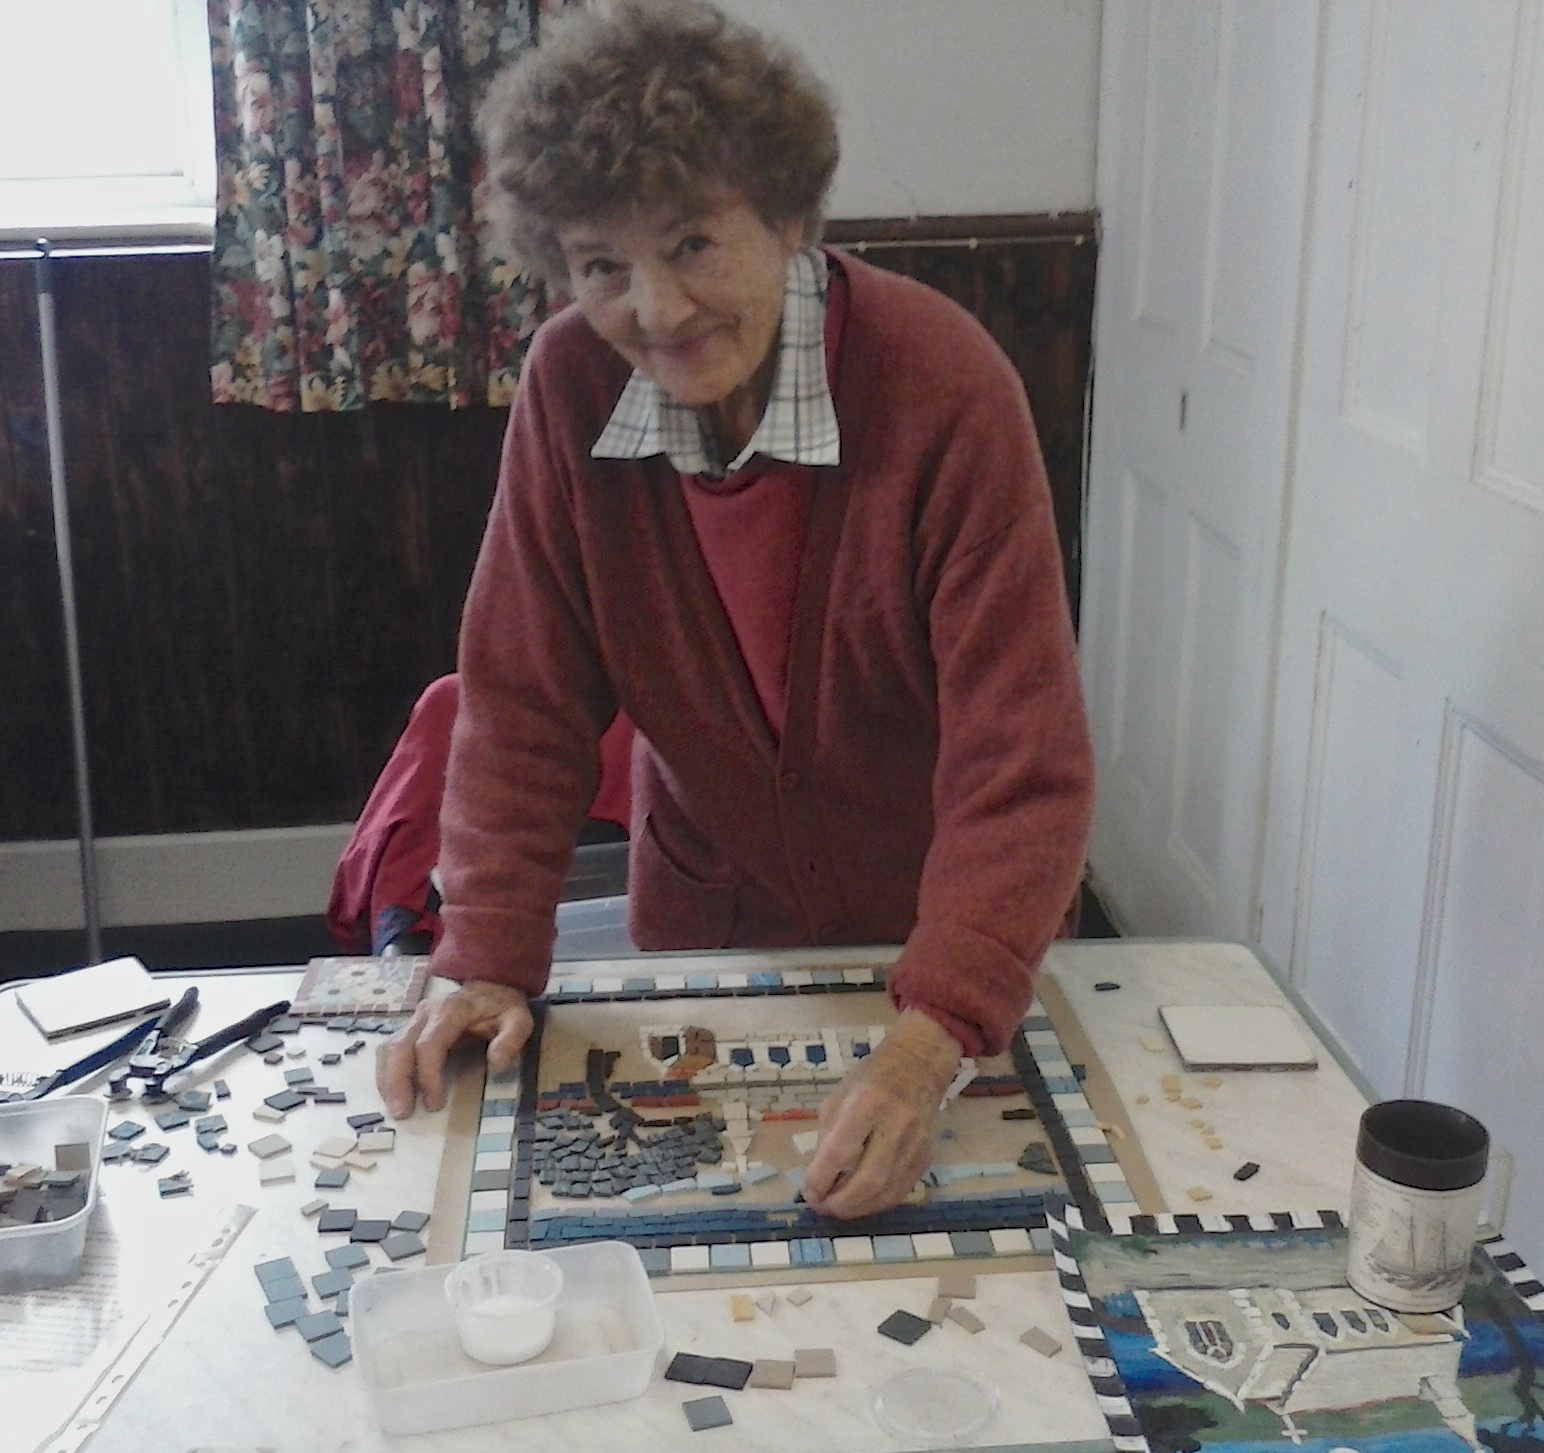 Yvonne Fuller working on the St Mawes Mosaic project